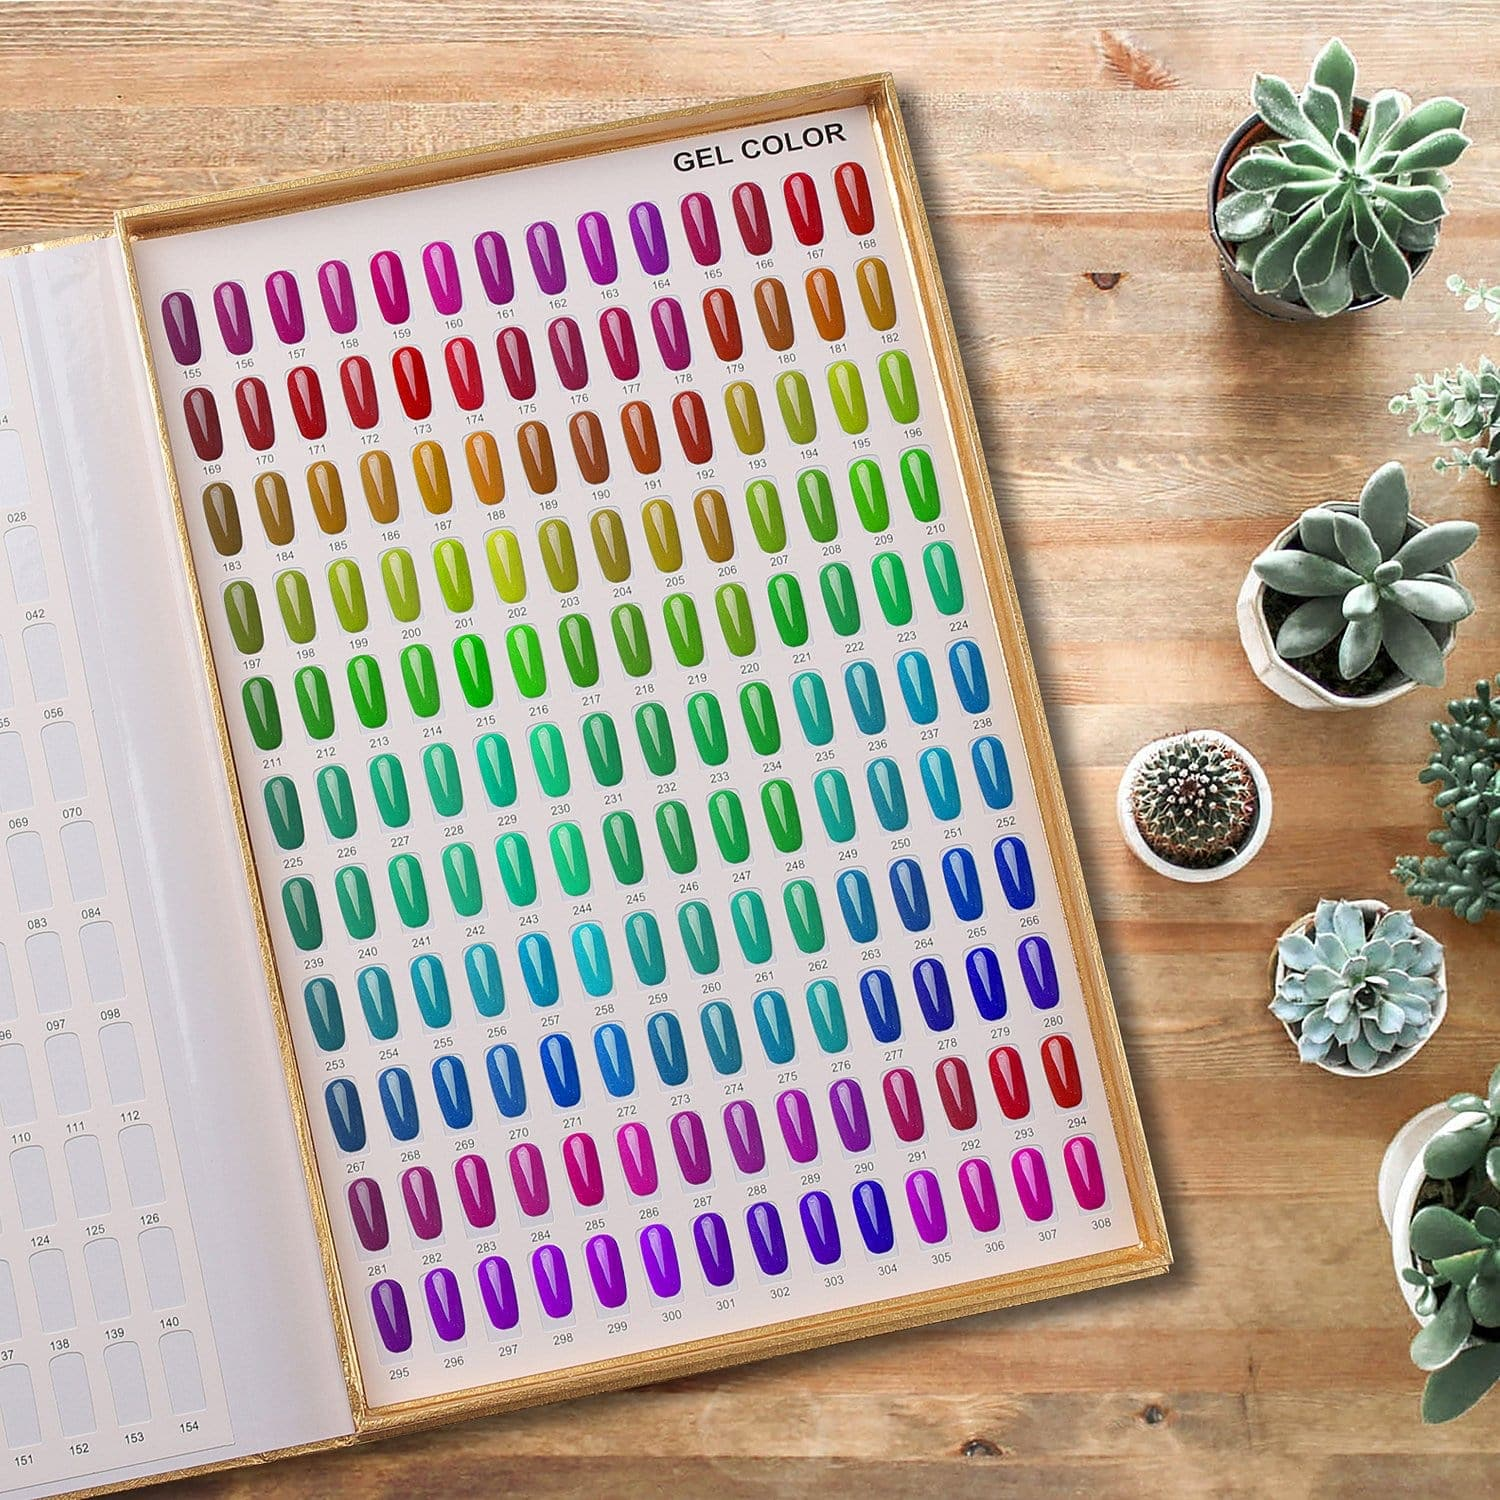 308 Poly Nail Gel Color Chart Display Book - Makartt